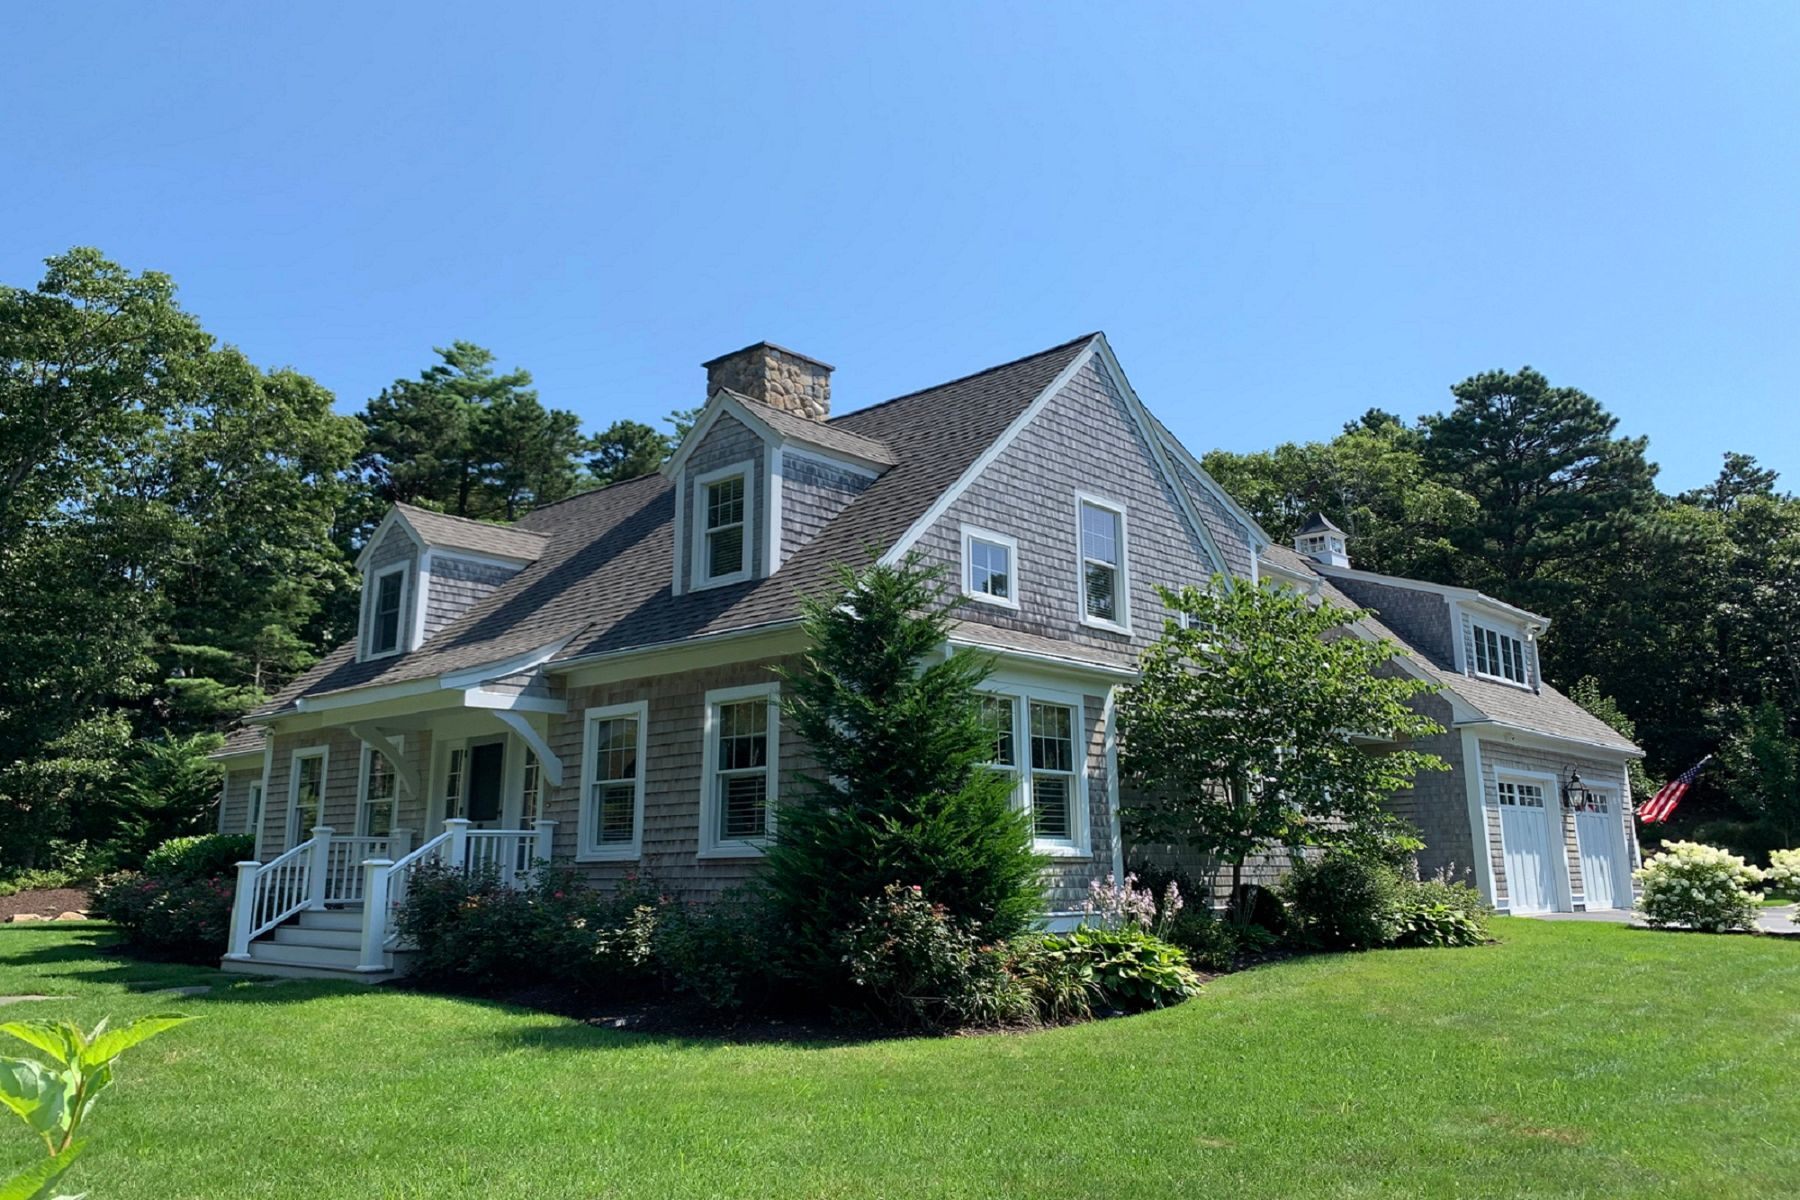 Single Family Homes for Sale at 3 Lost Meadows Road East Sandwich, Massachusetts 02537 United States